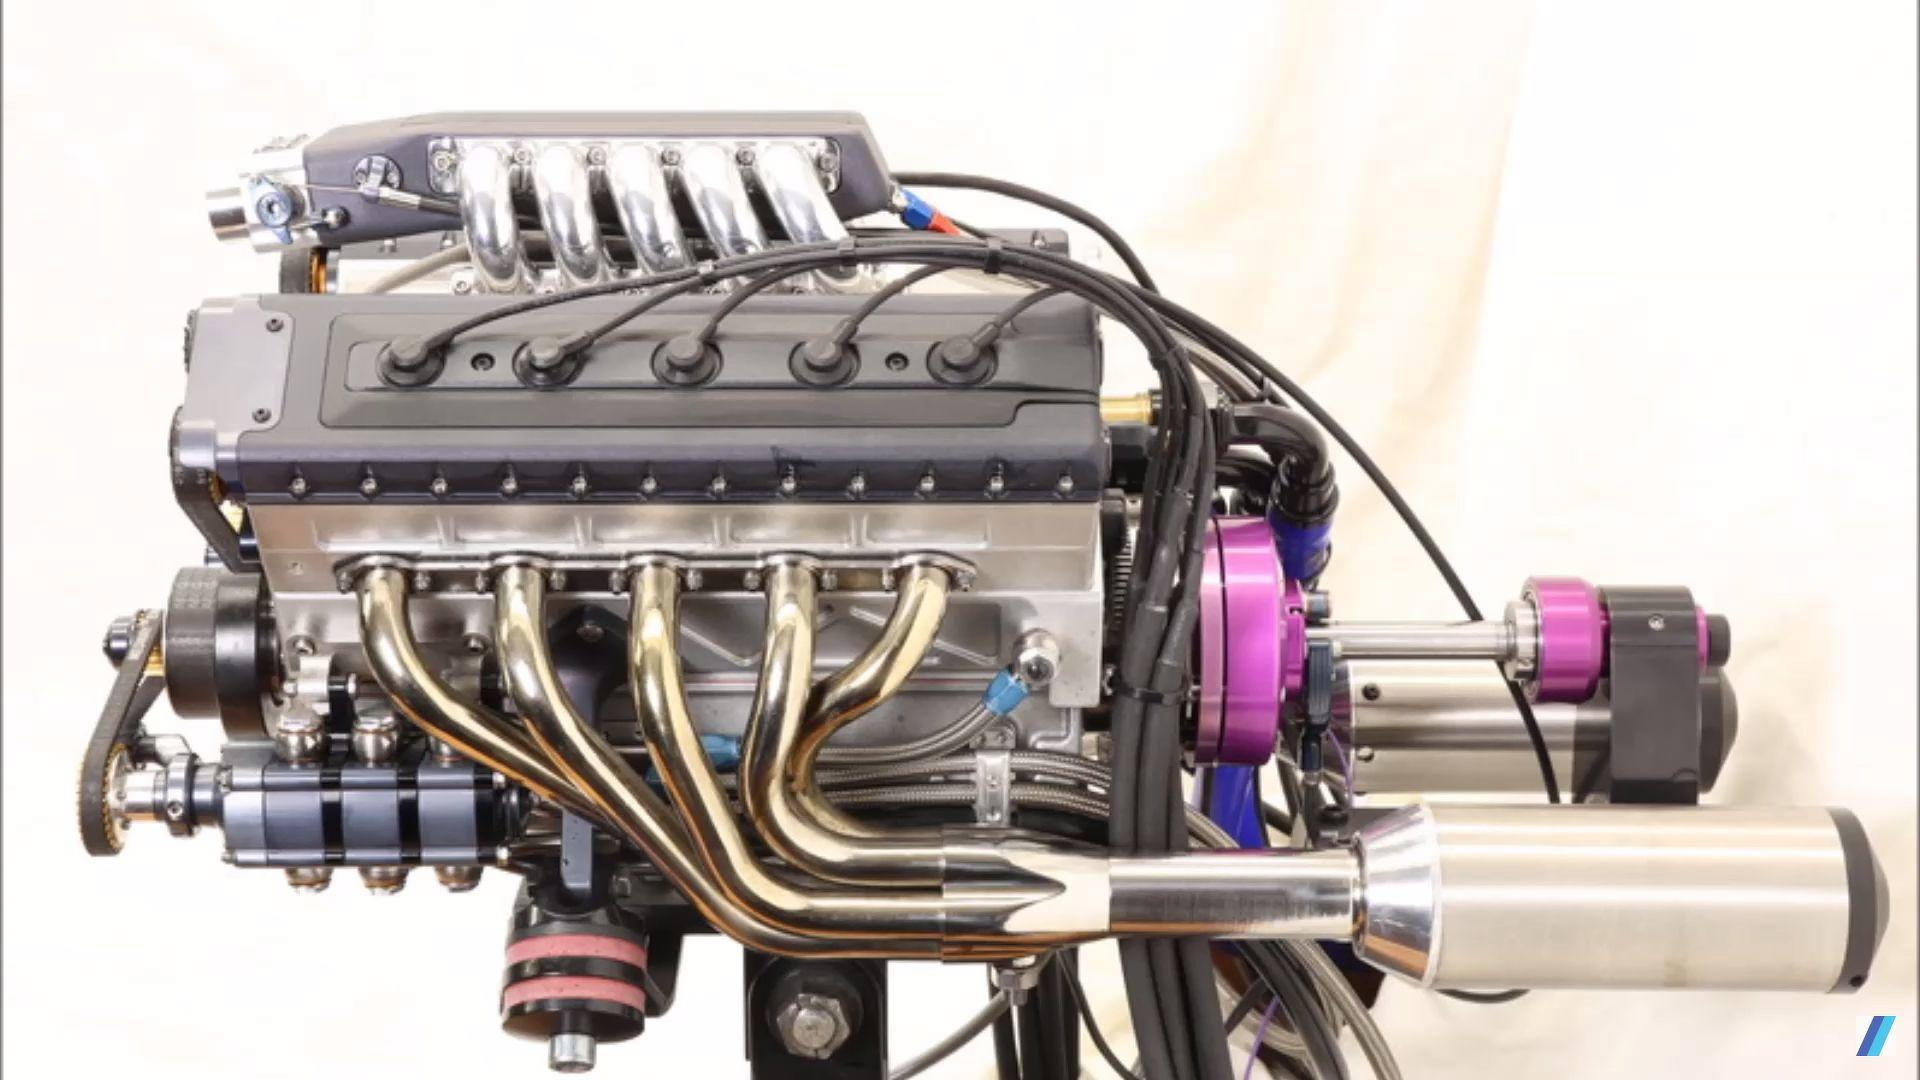 See The Amazing Process Of Building A 125cc V10 Engine At Home